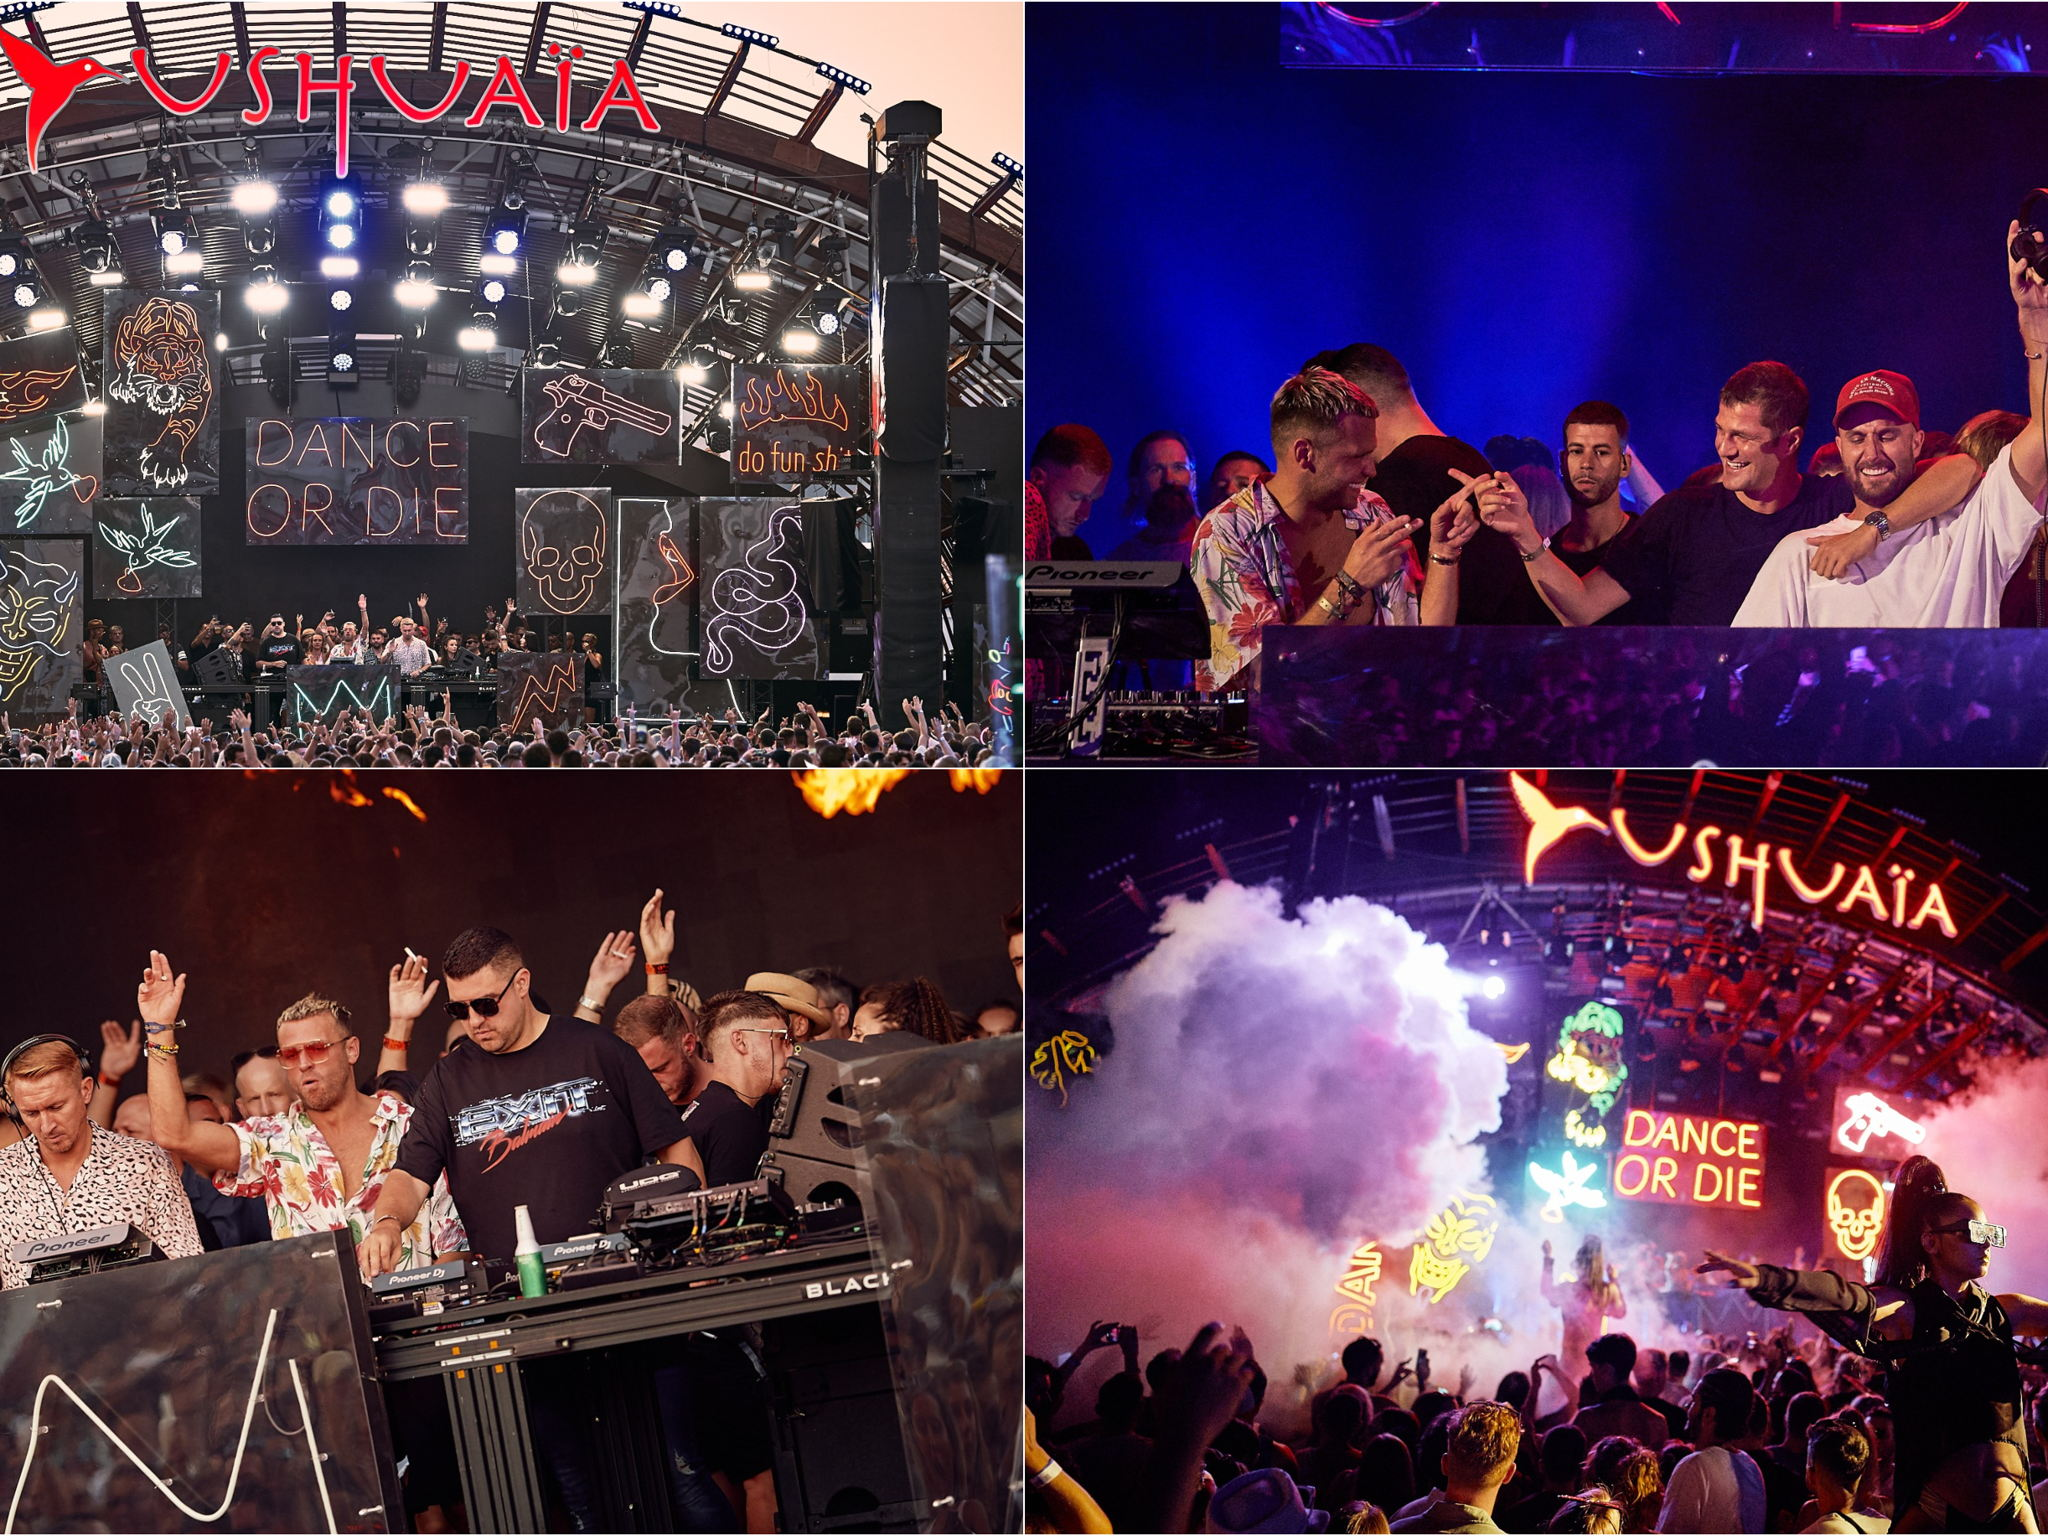 Dance or die collage party Ushuaia Ibiza Tickets